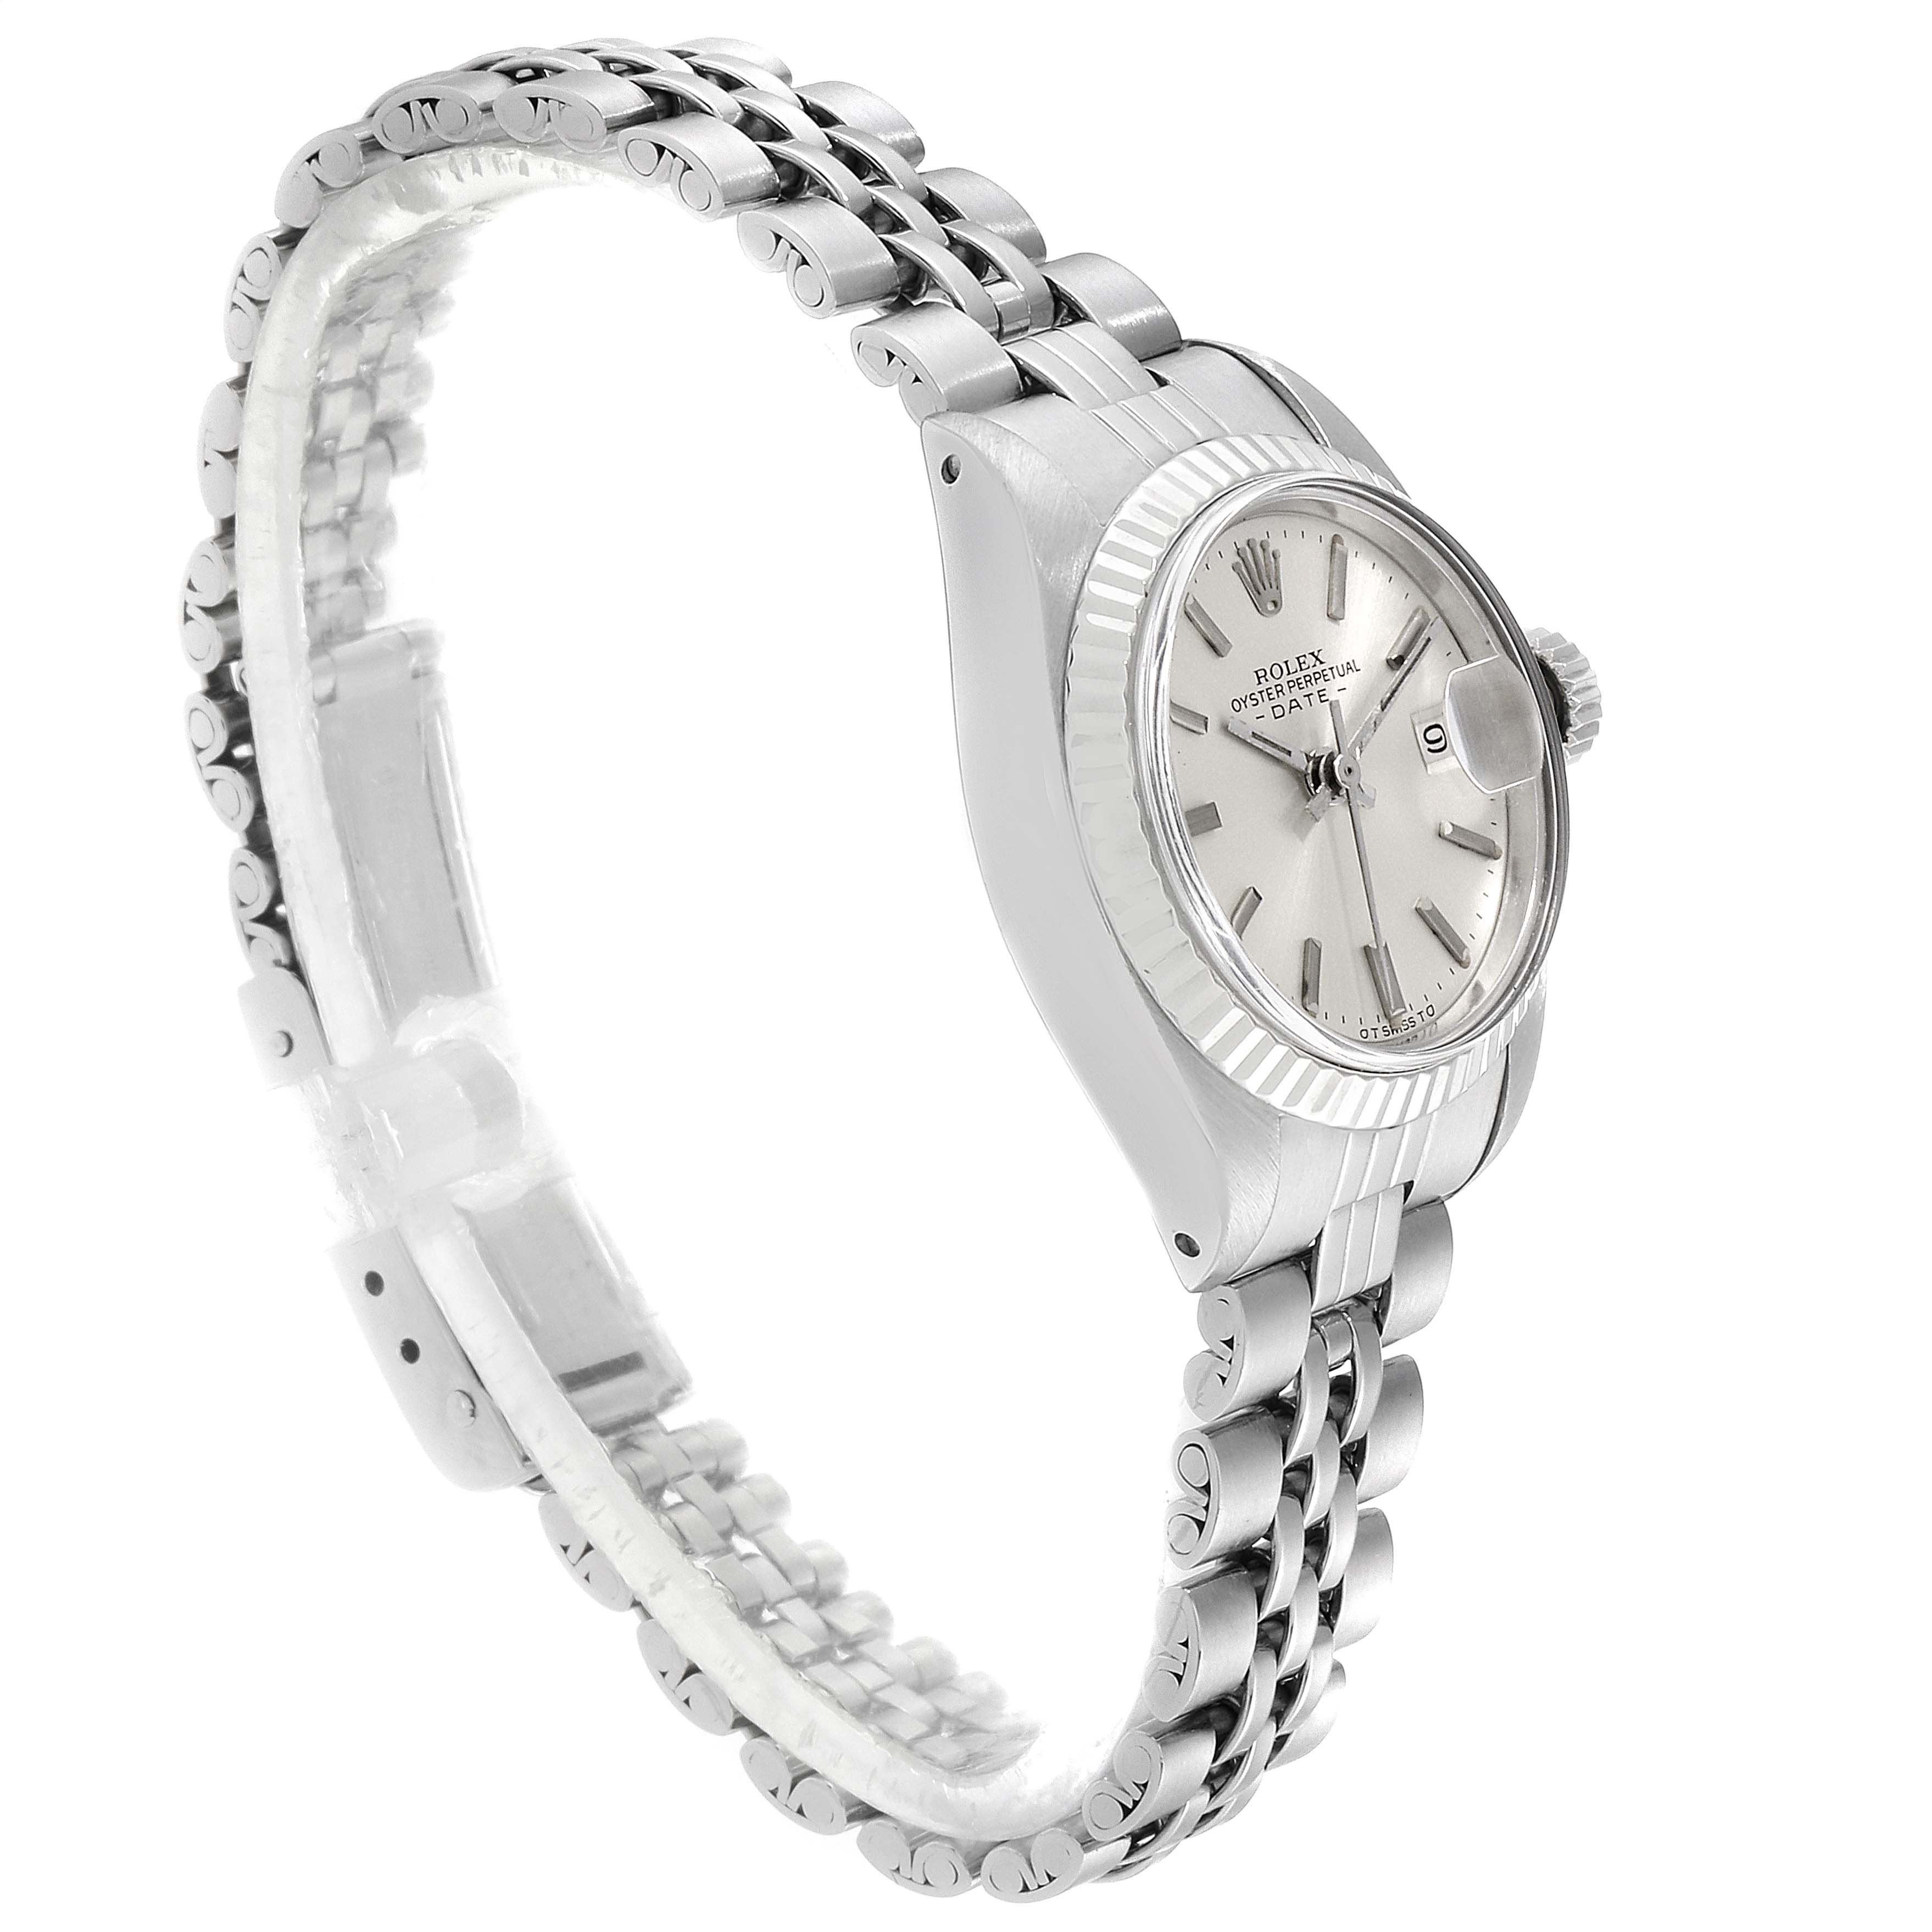 Rolex Datejust Steel White Gold Jubilee Bracelet Ladies Watch 6917 SwissWatchExpo